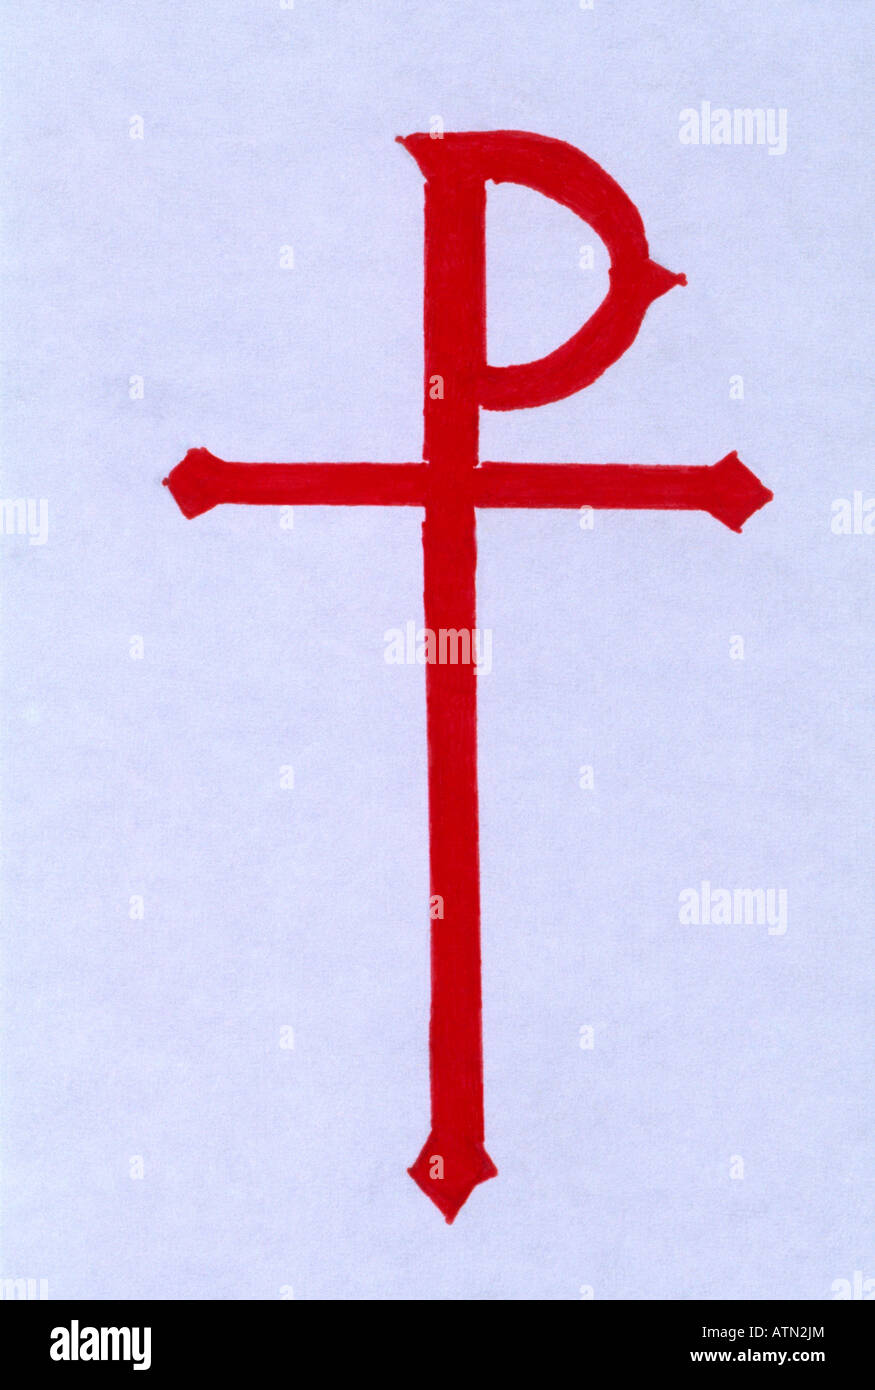 Chi rho symbol christian stock photo royalty free image 16355131 chi rho symbol christian buycottarizona Images